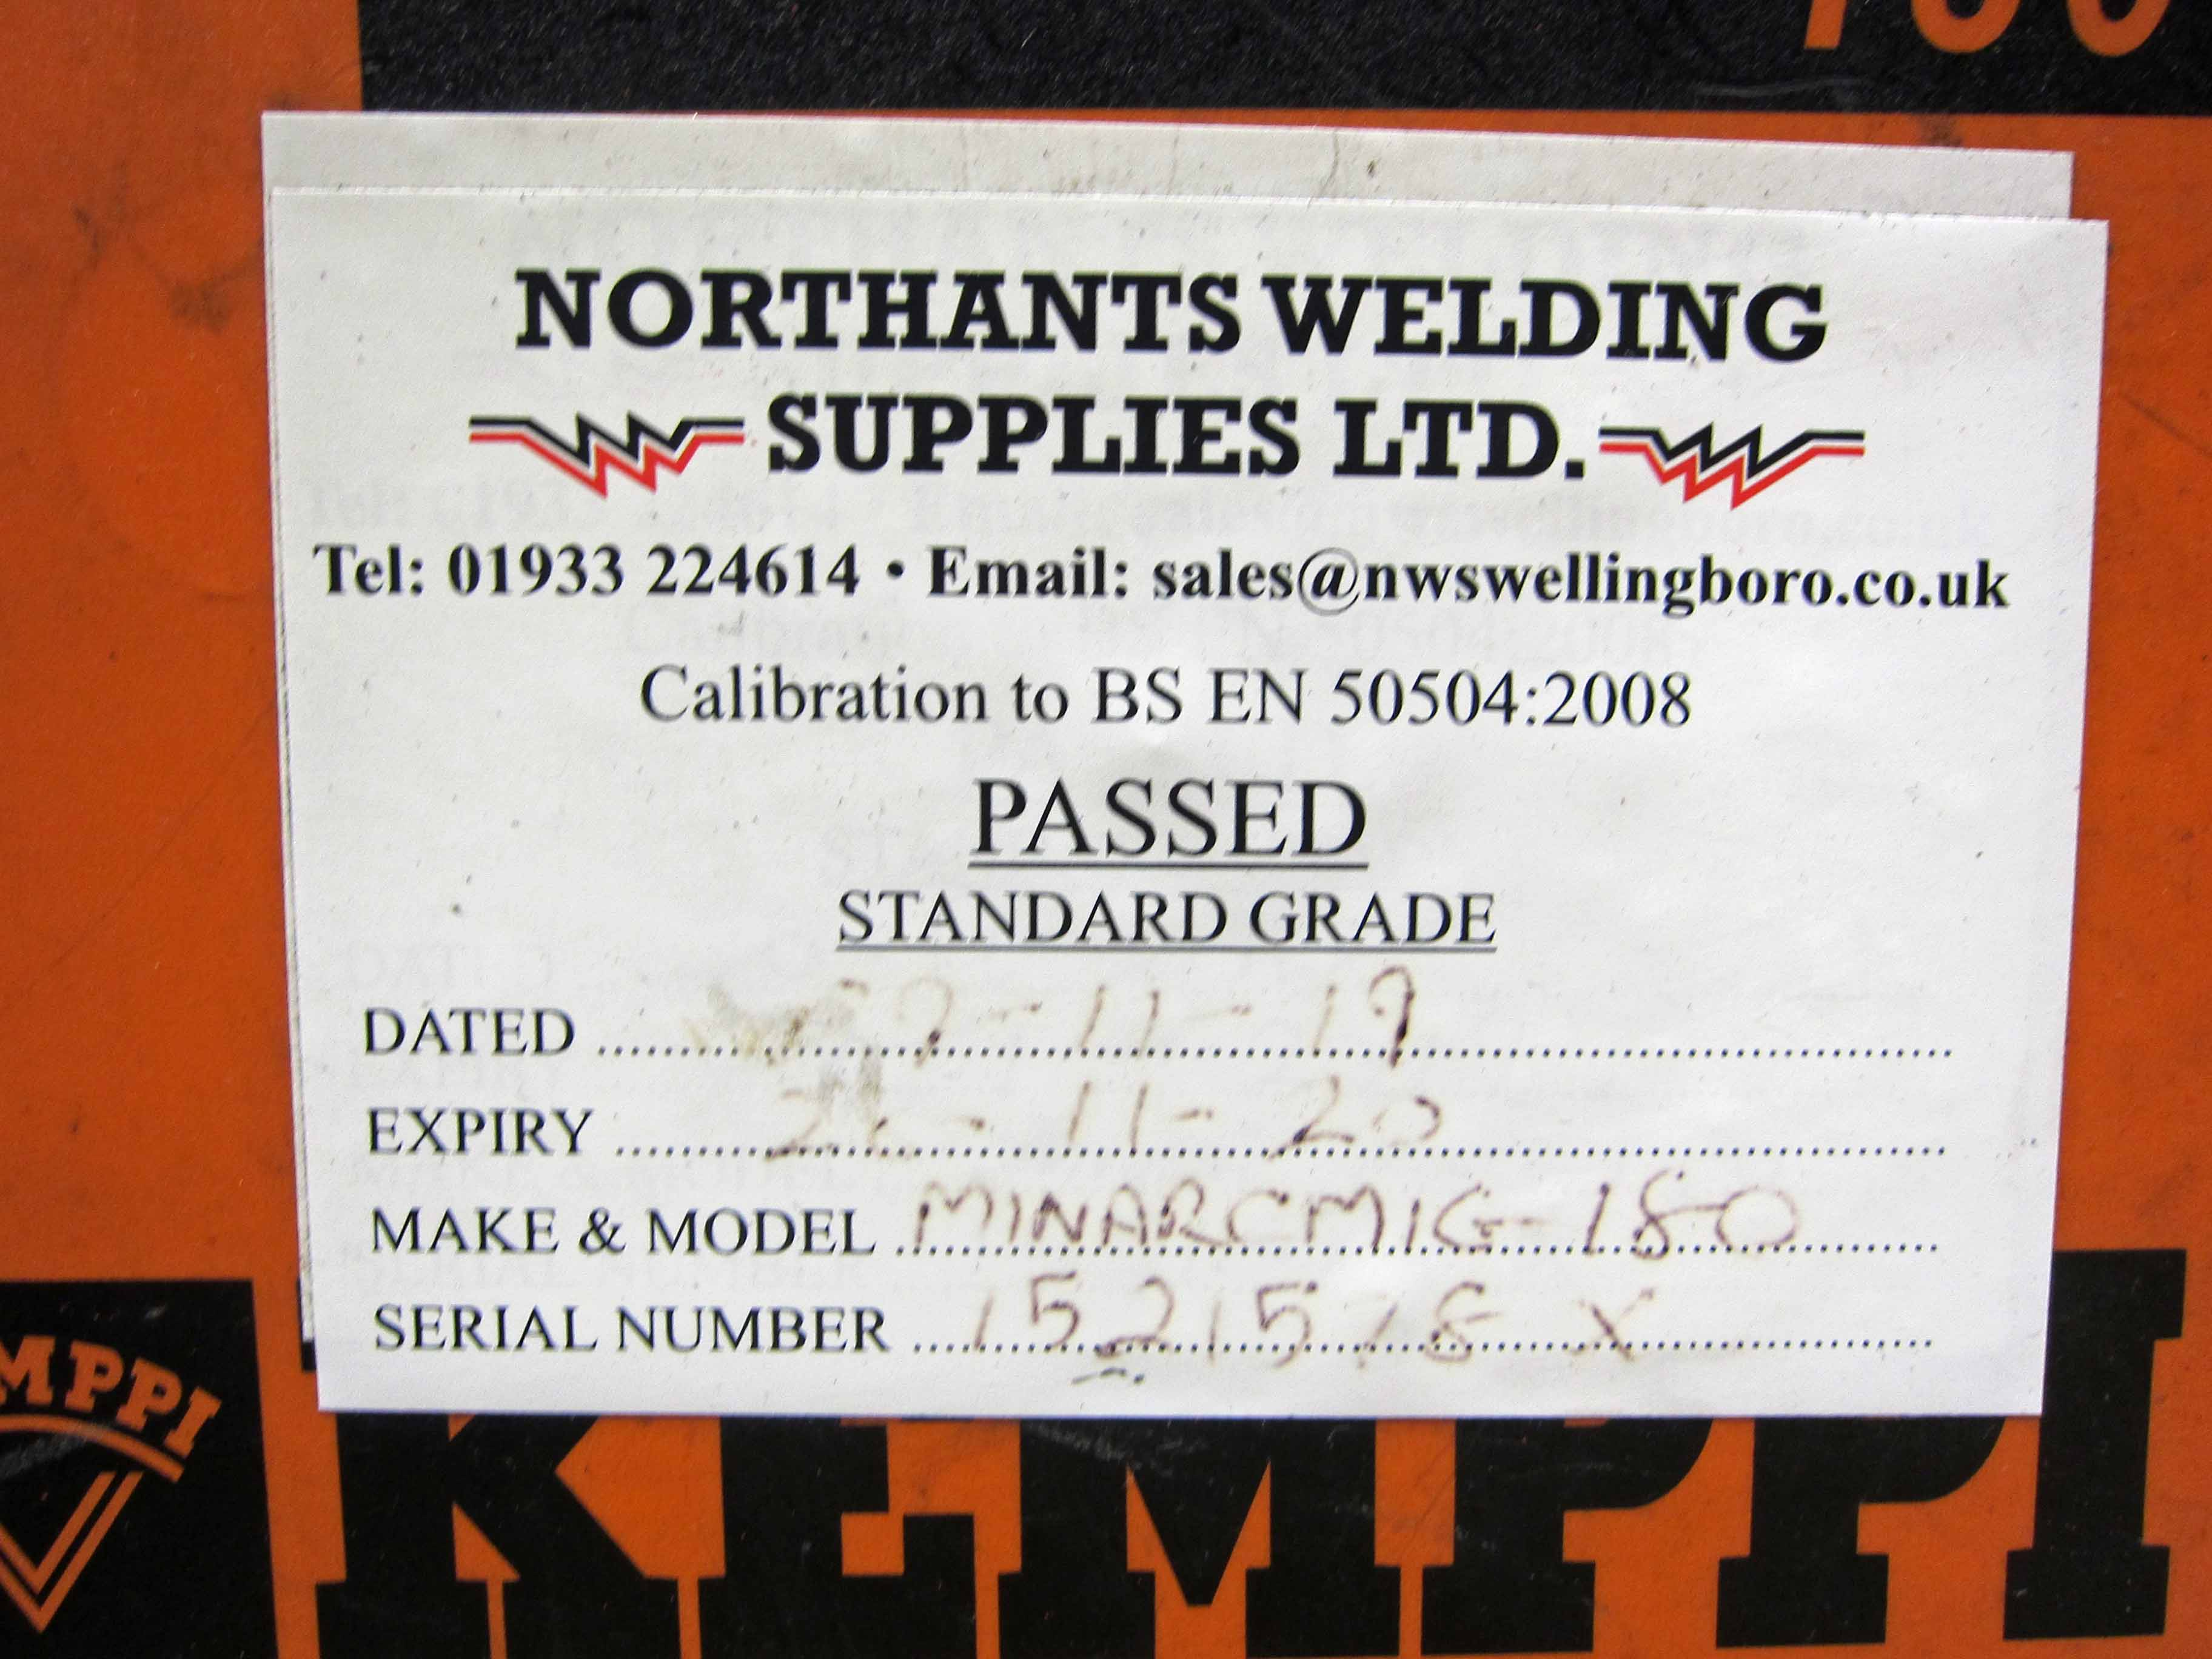 A KEMPPI MinArc Mig Model Adaptive 180 240V Portable Mig Welder complete with Gun and Earth Lead ( - Image 4 of 6